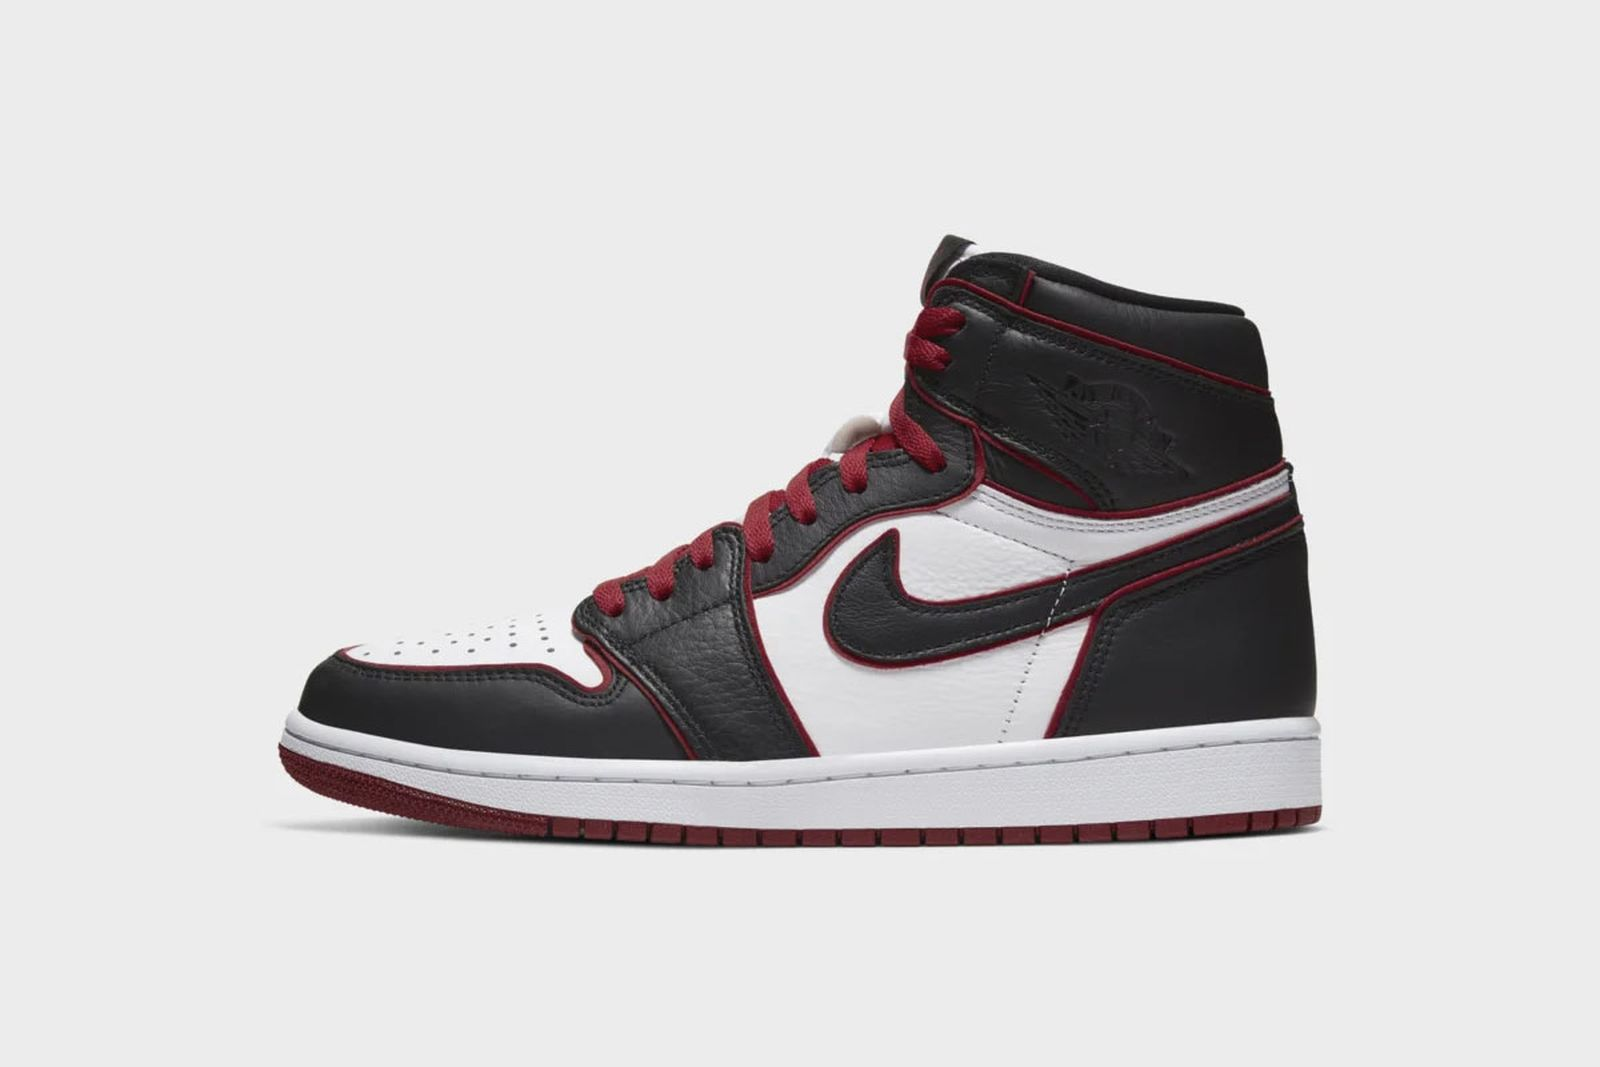 air-jordan-1-retro-high-og-bloodline-release-date-price-17